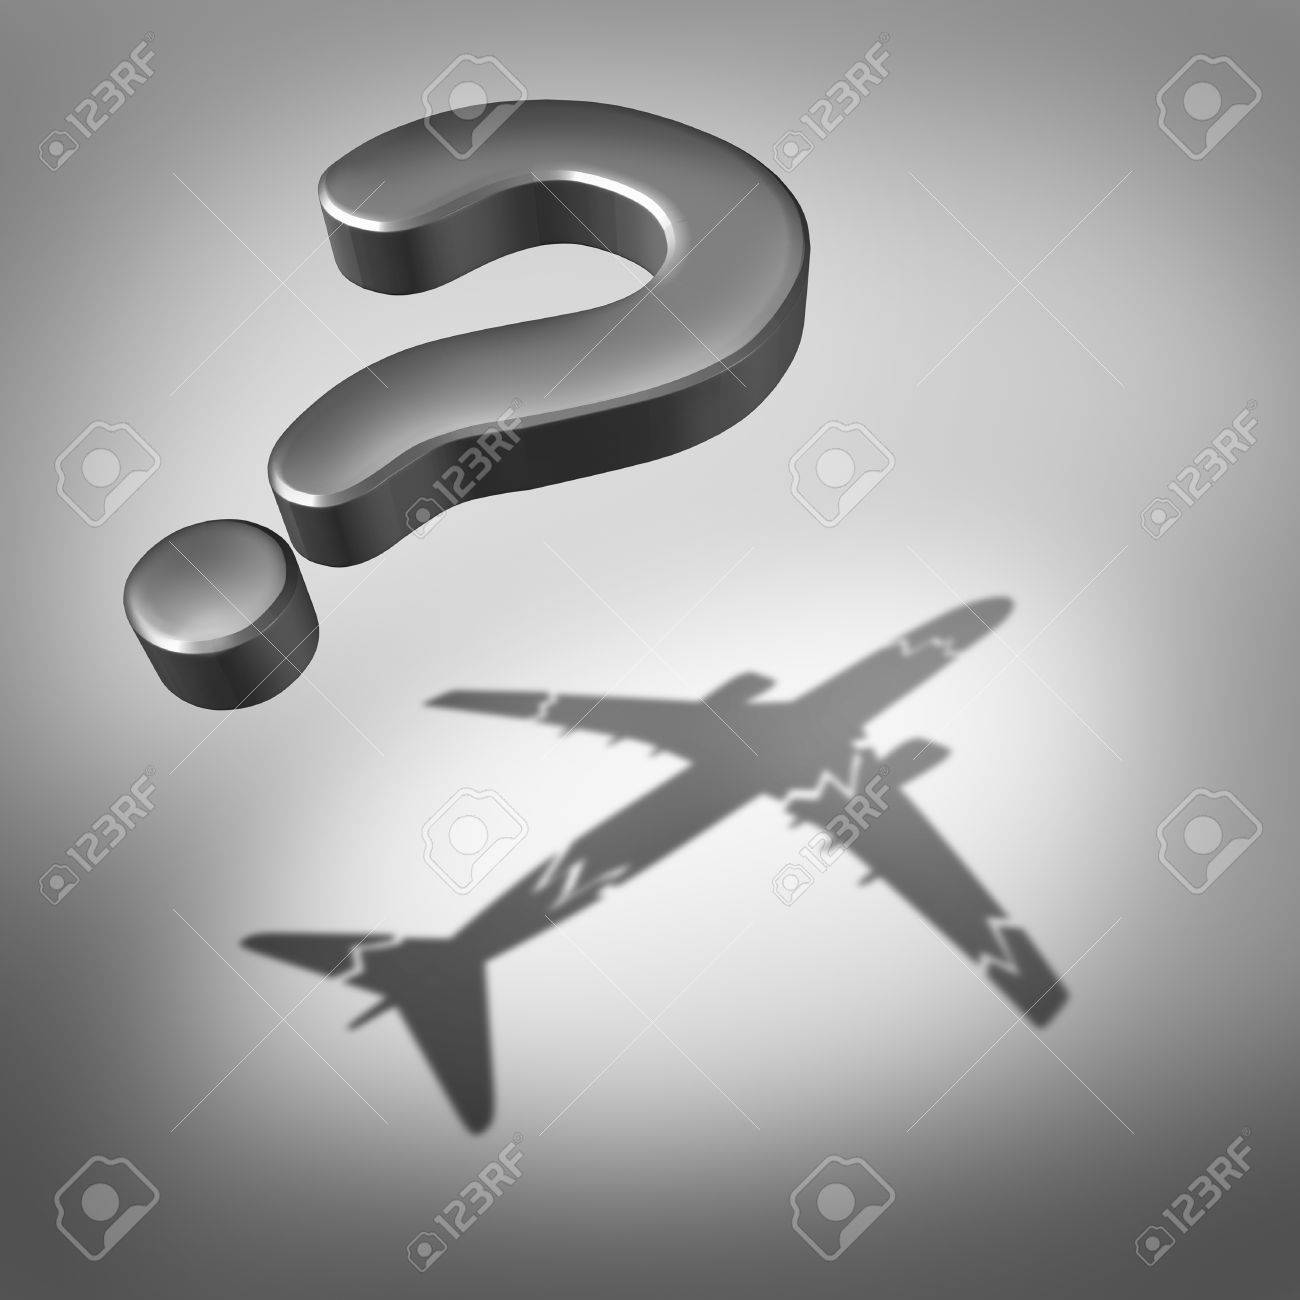 Aviation Disaster Question And Air Safety Concept As A Flying Three Dimensional Mark With